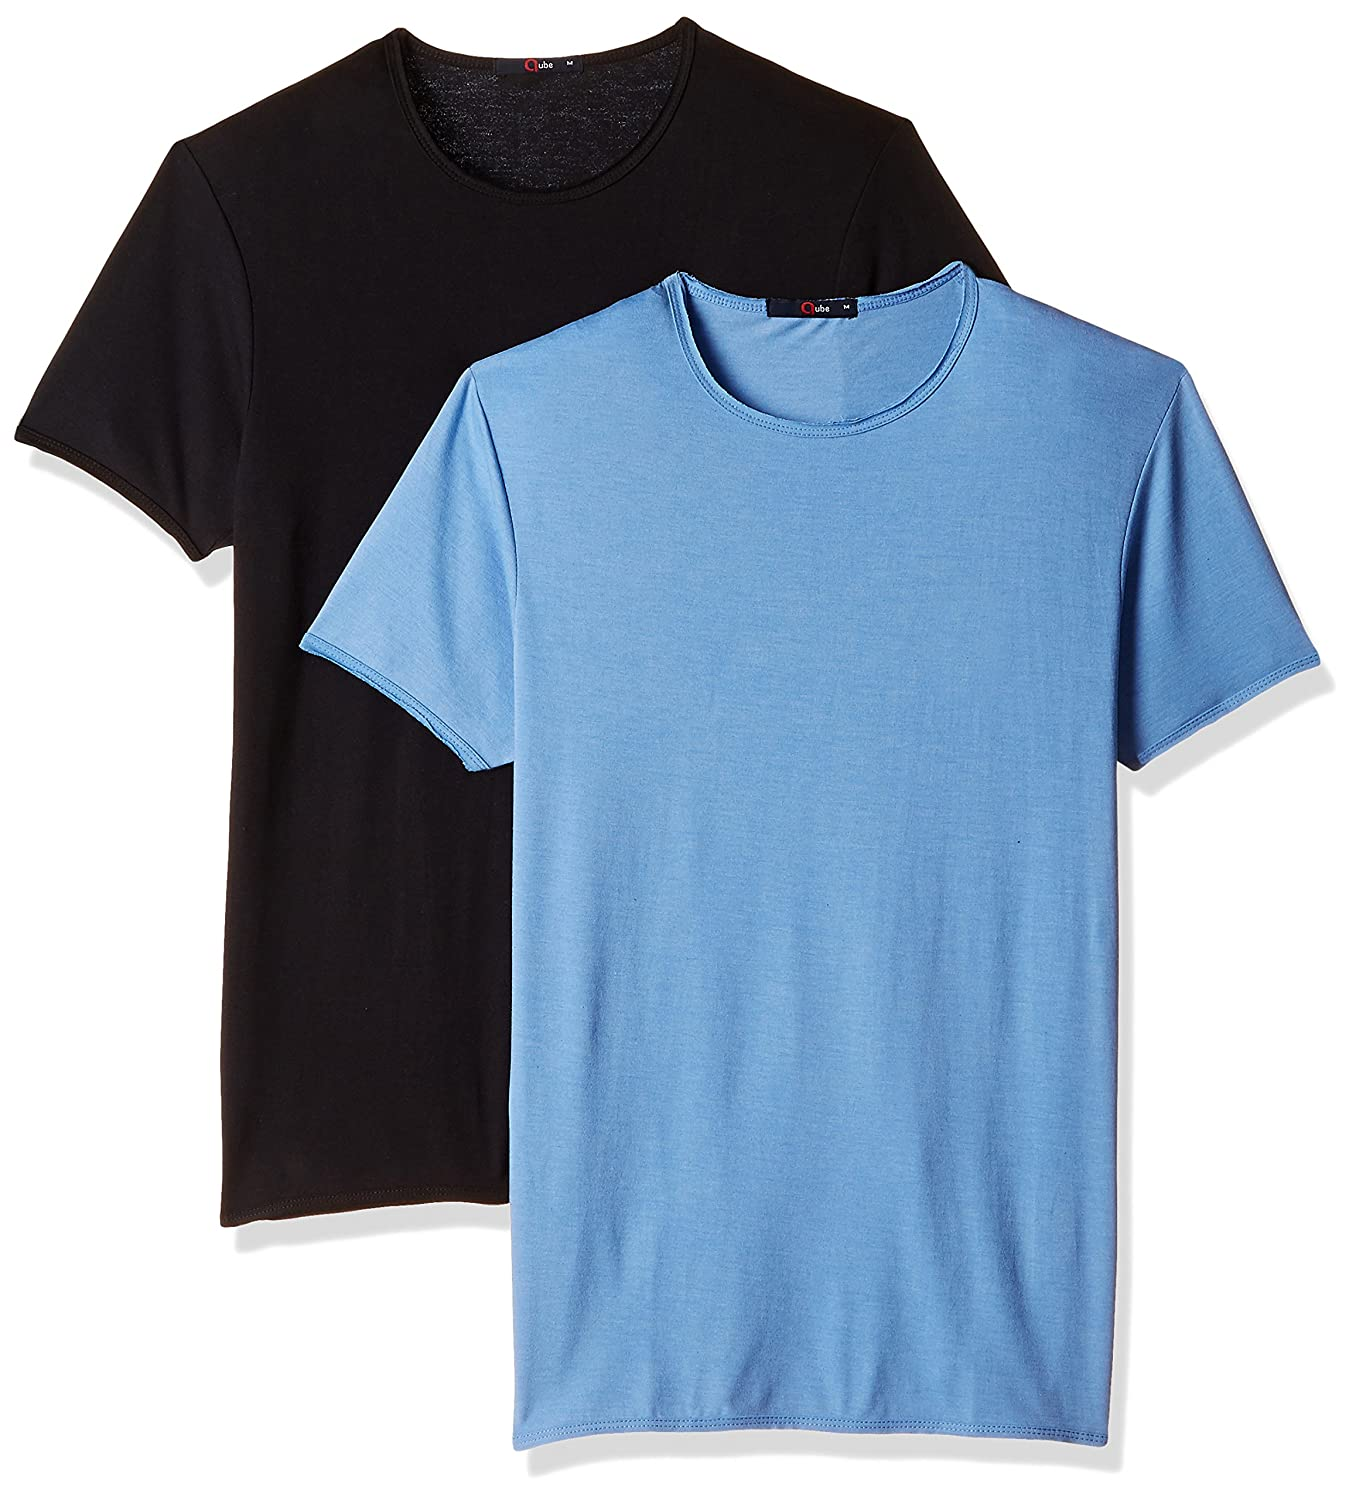 Qube By Fort Collins Mens T-Shirt (Pack of 2)